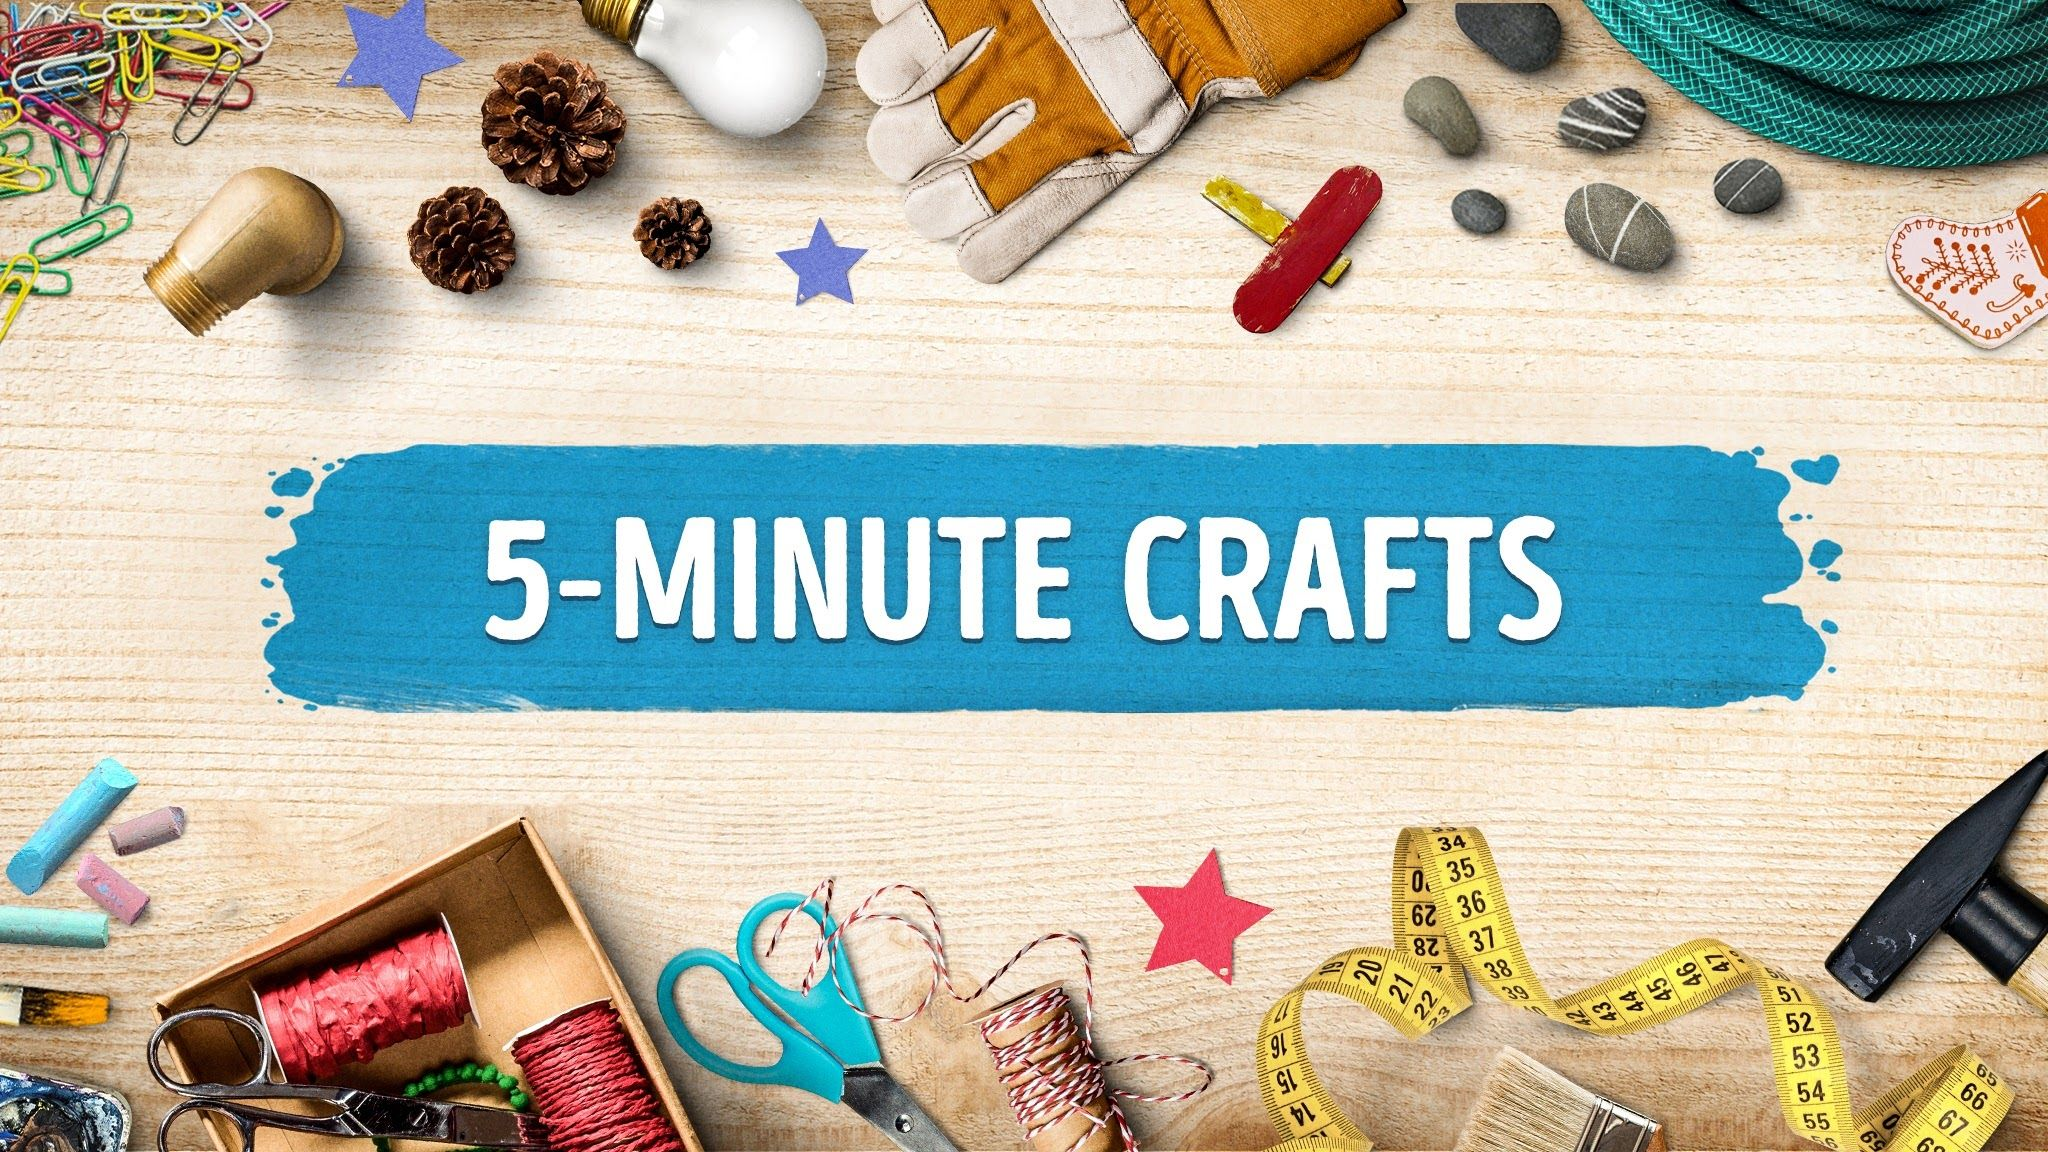 (60) 5Minute Crafts YouTube 5 minute crafts, 5 minute